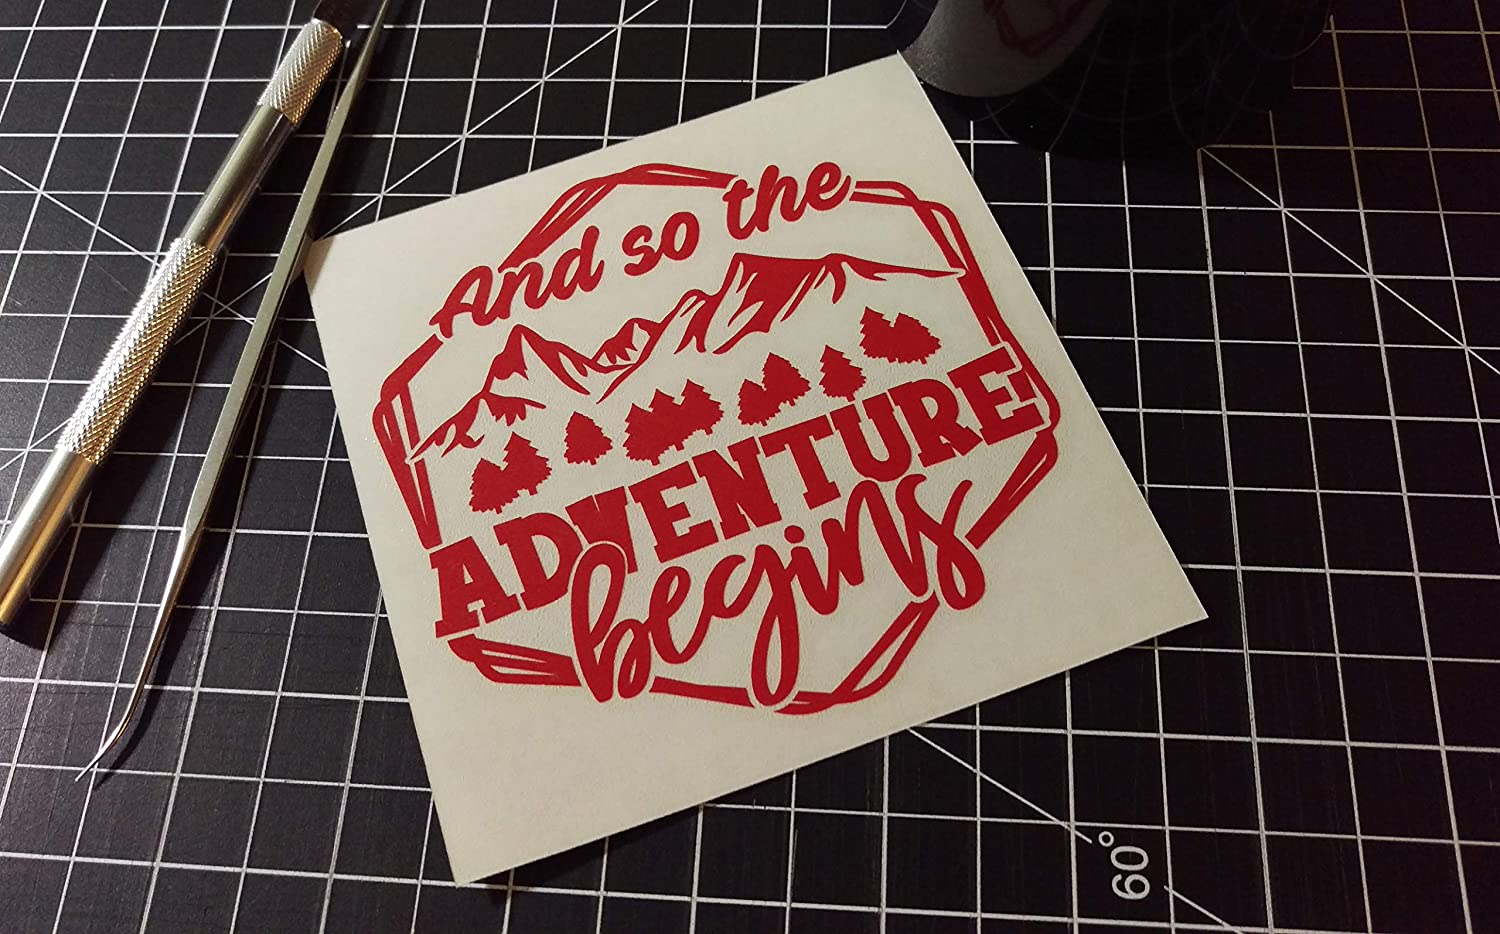 And So The Adventure Begins Vinyl Decal Hiking RV Decal Traveling Mountains Camping Camper Decal Window Decal Outdoors